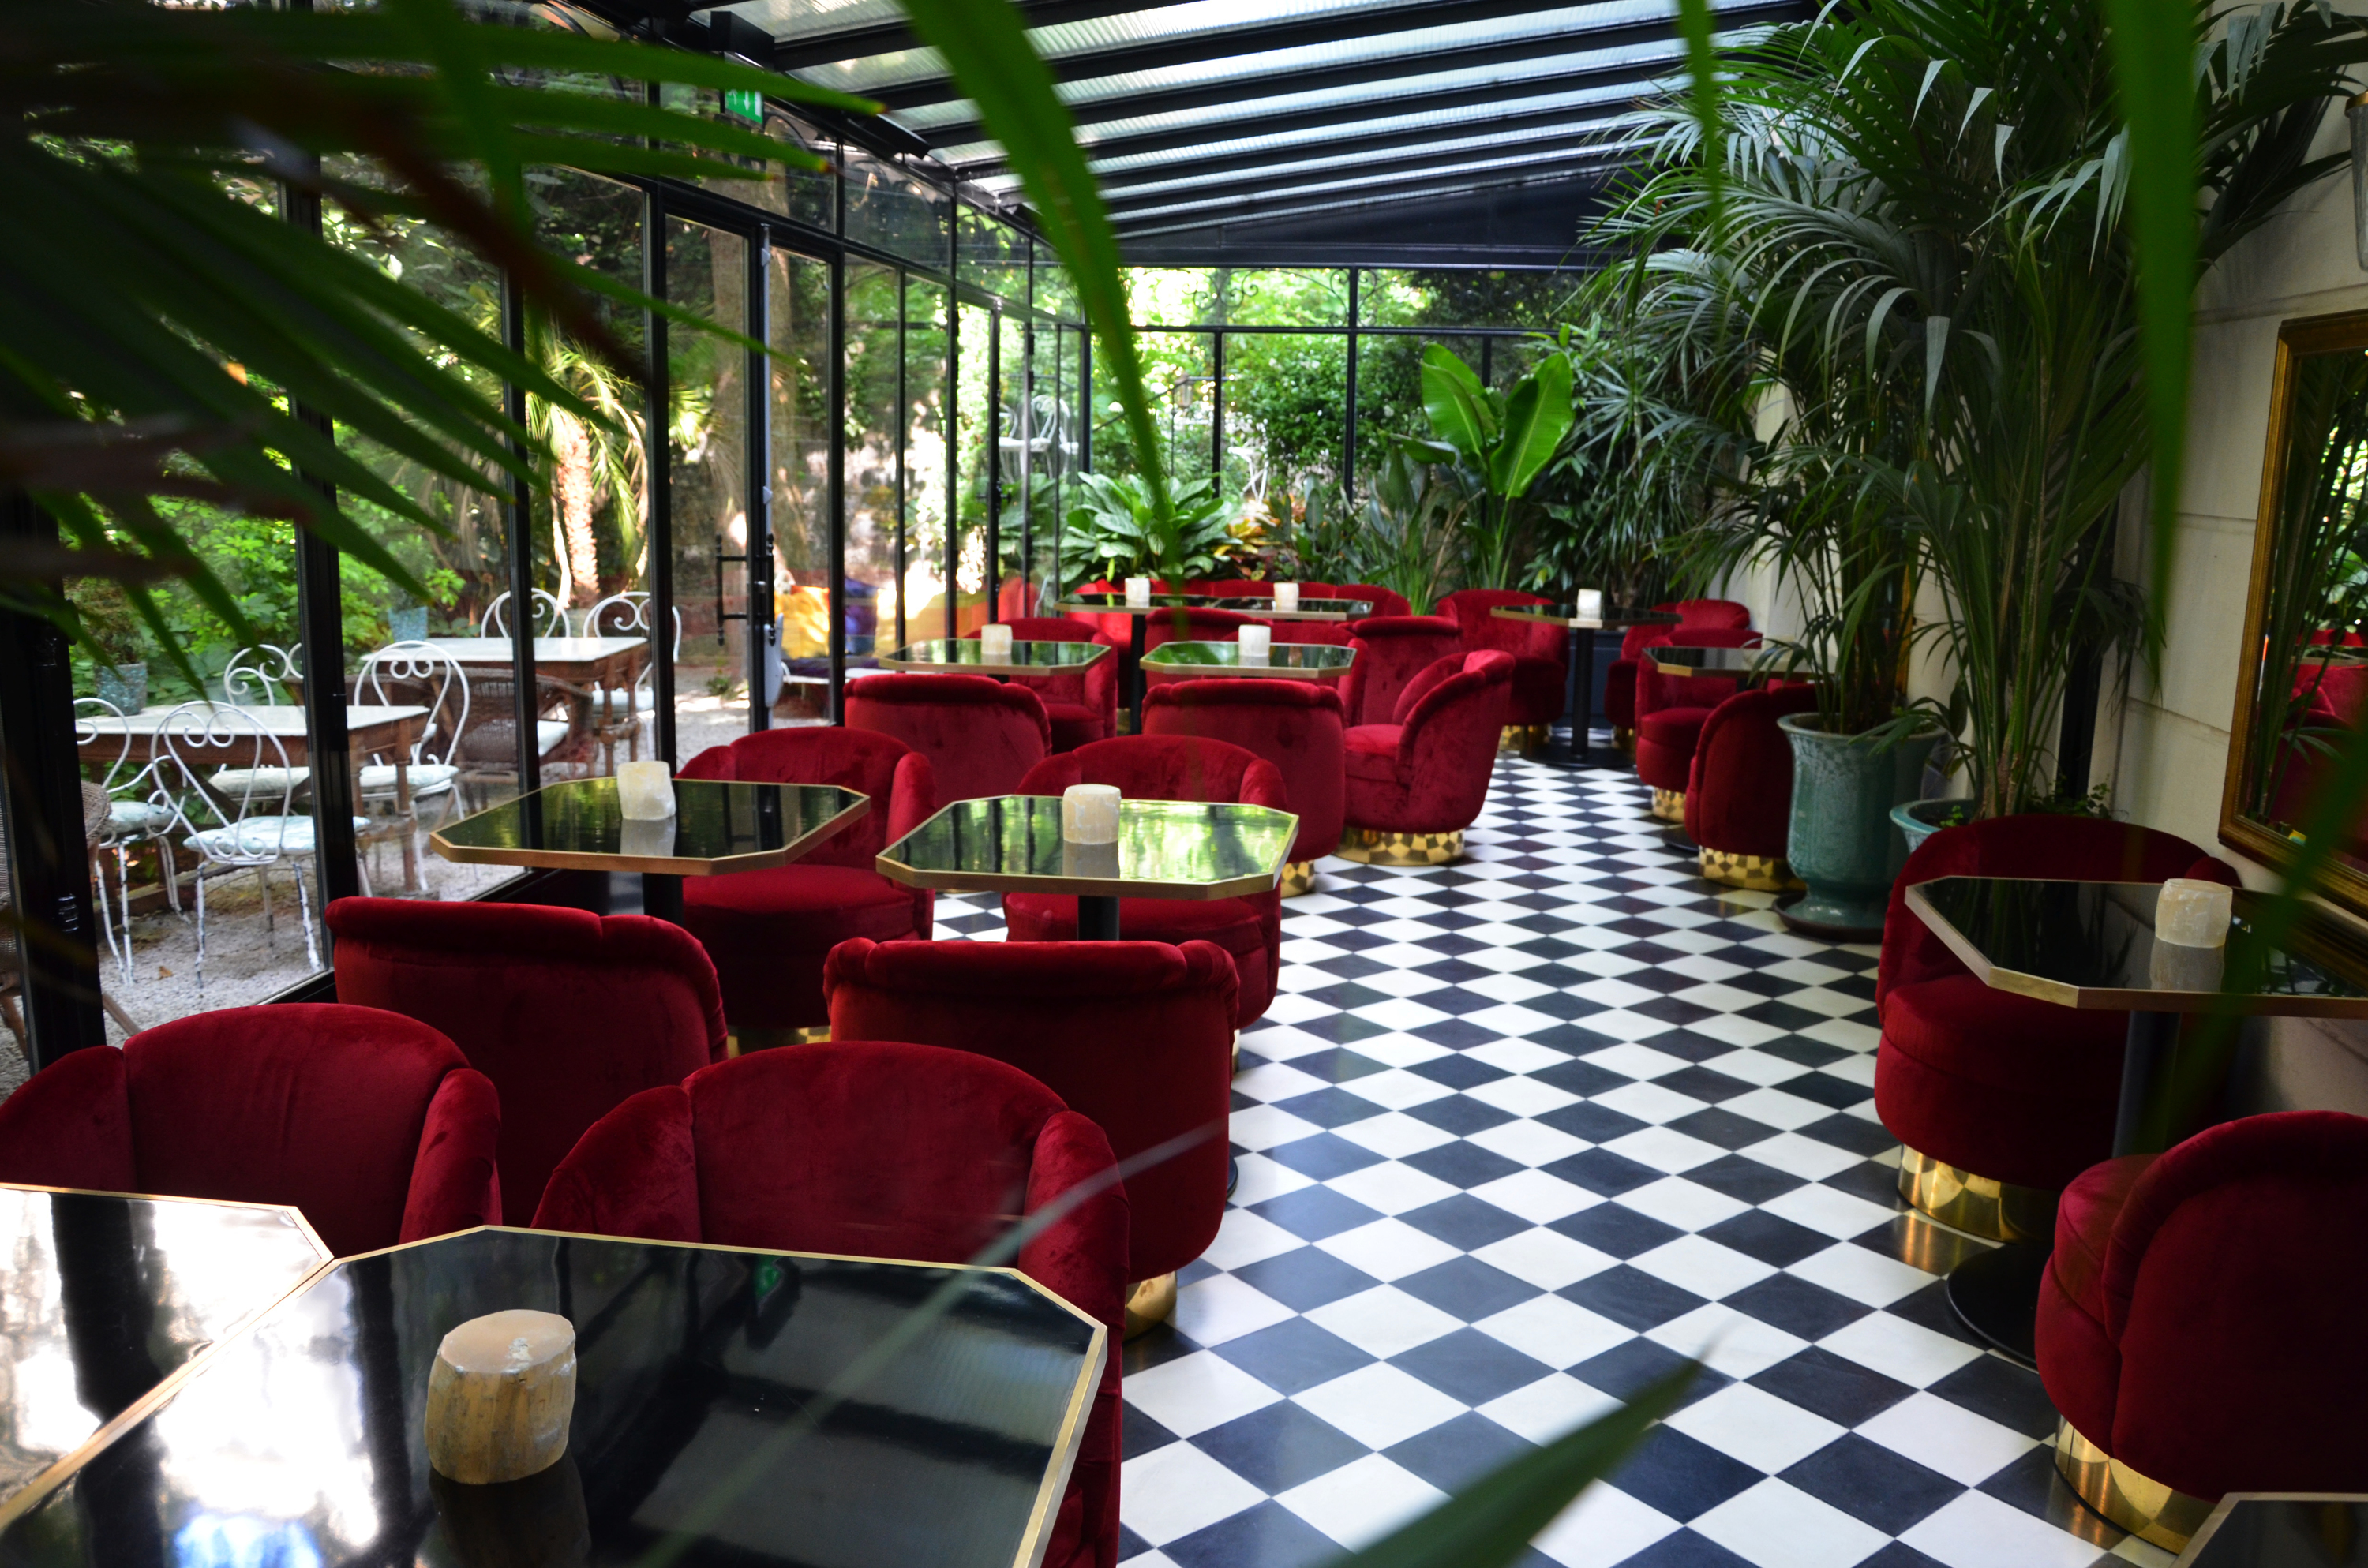 Le tr s particulier bars and pubs in montmartre paris for Photo jardin contemporain particulier